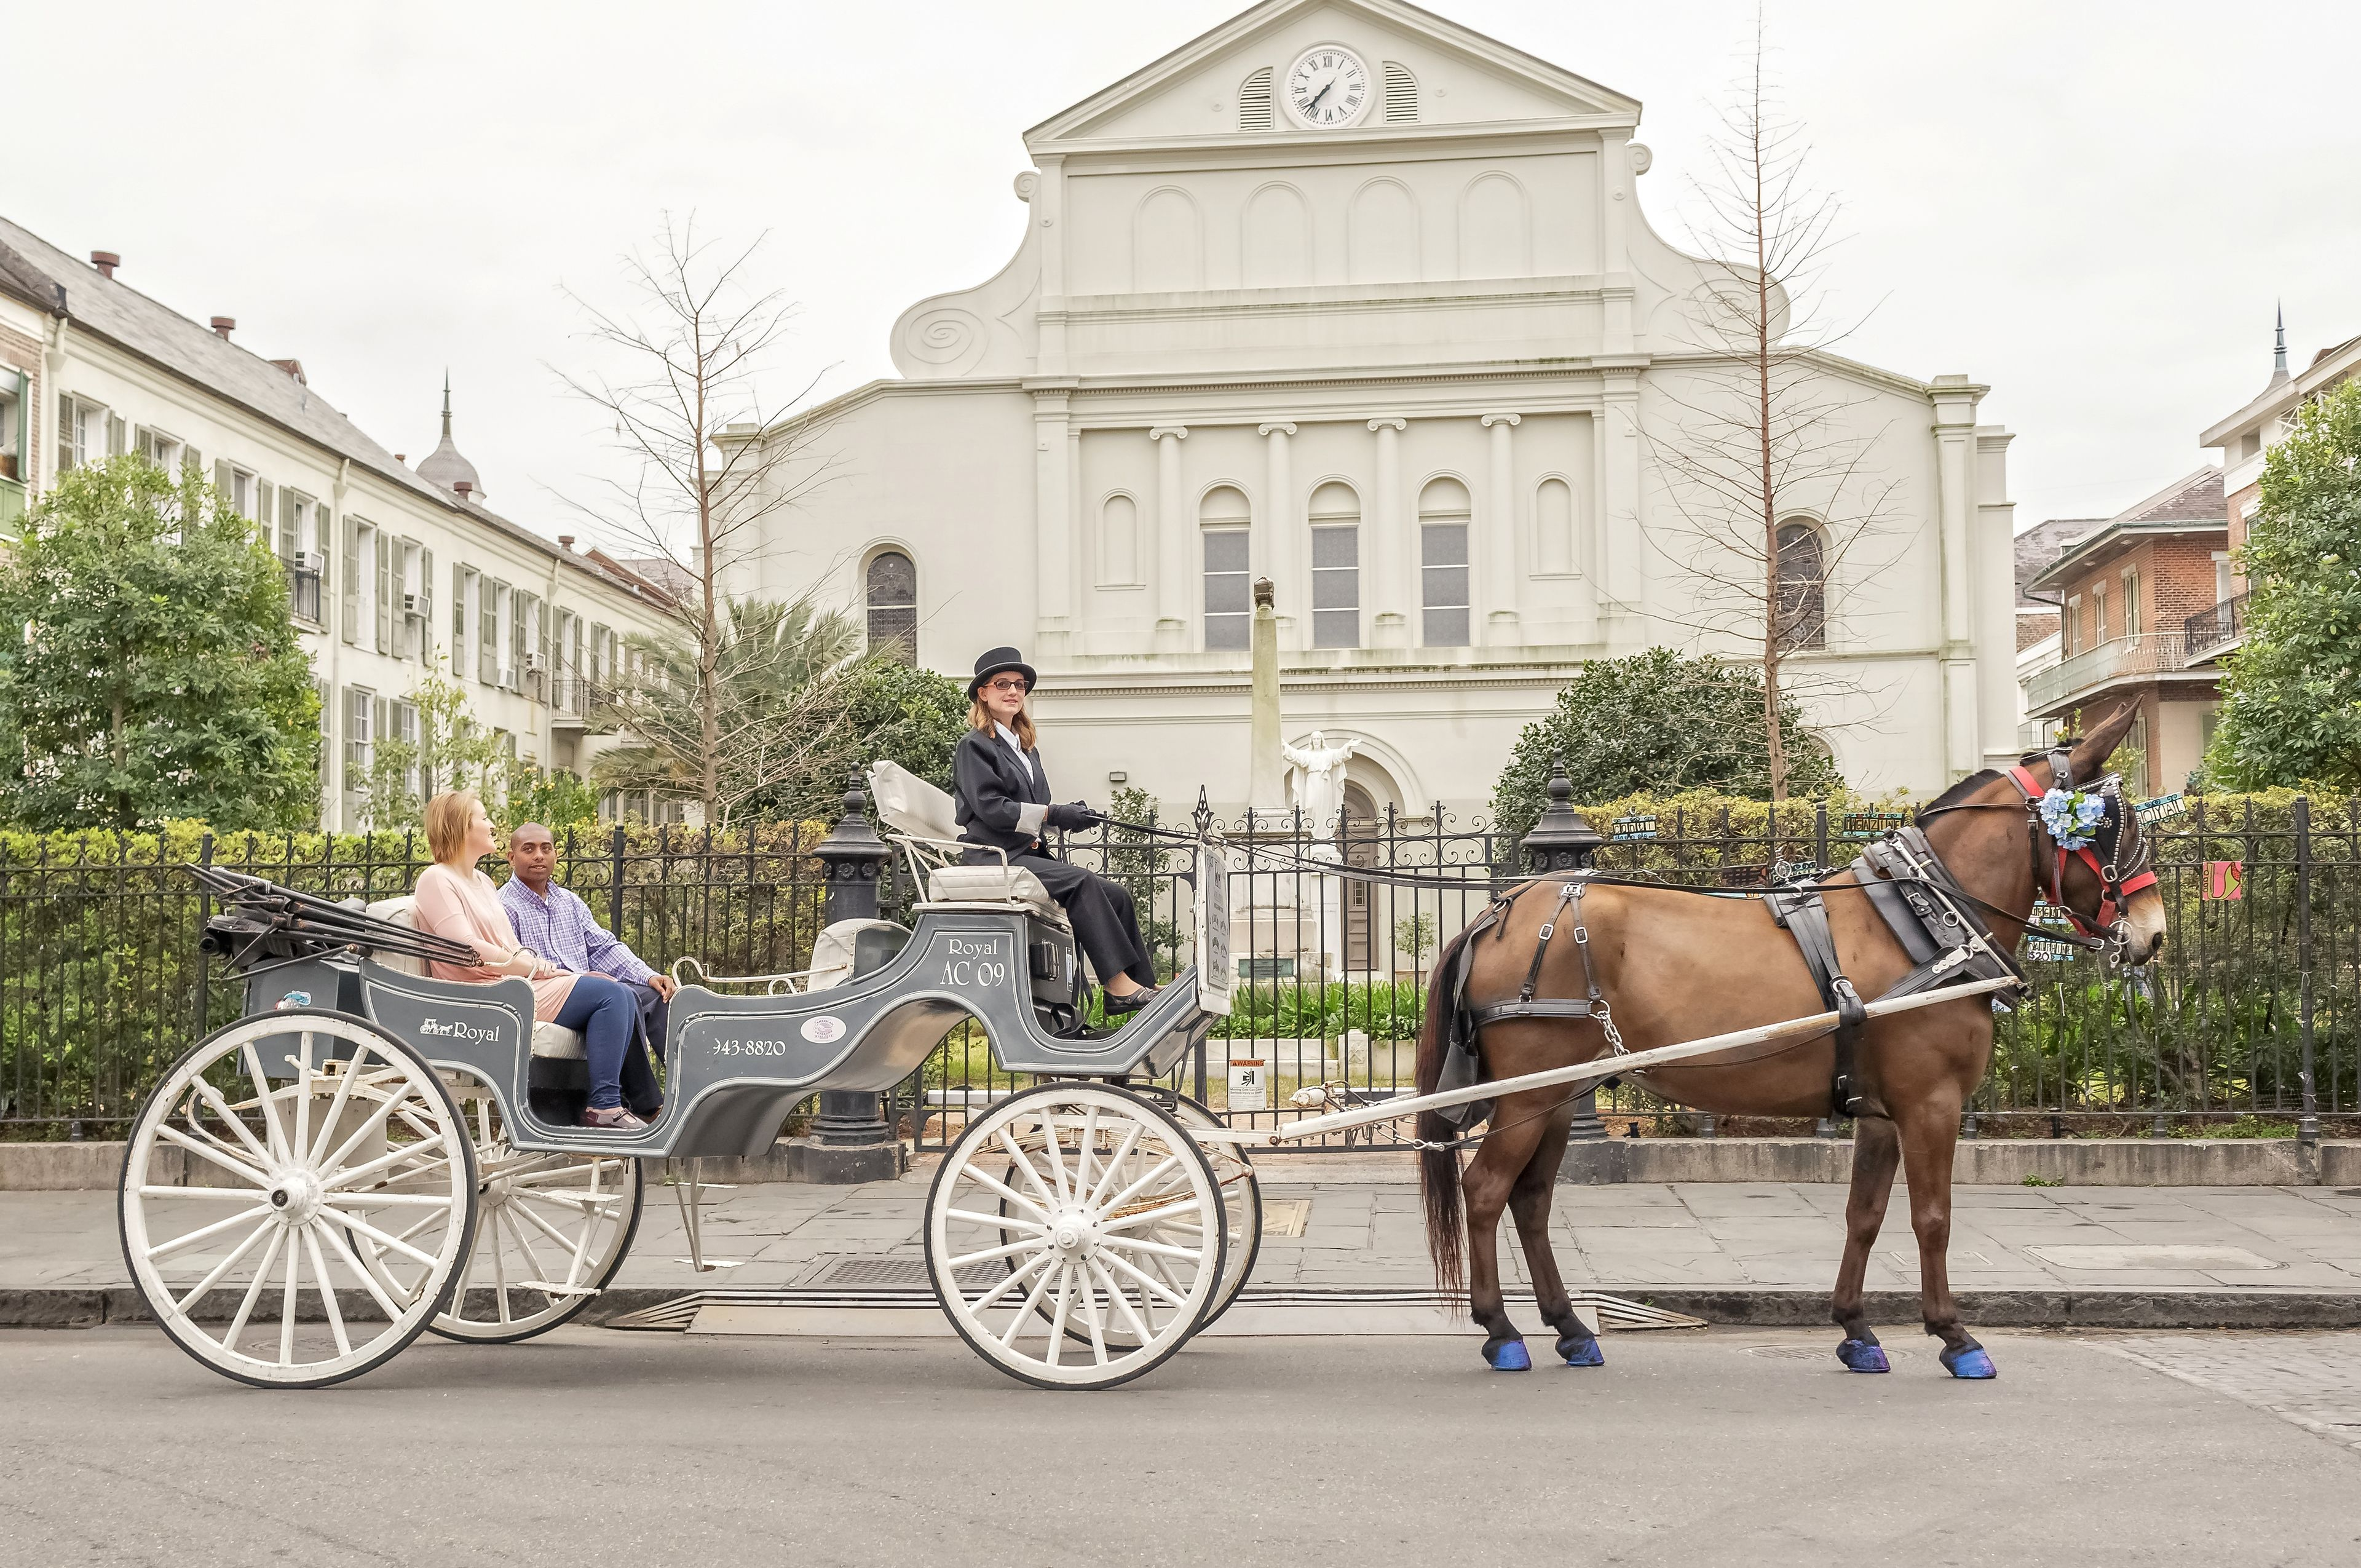 Couple in a horse-drawn carriage in front of historic building in French Quarter of New Orleans